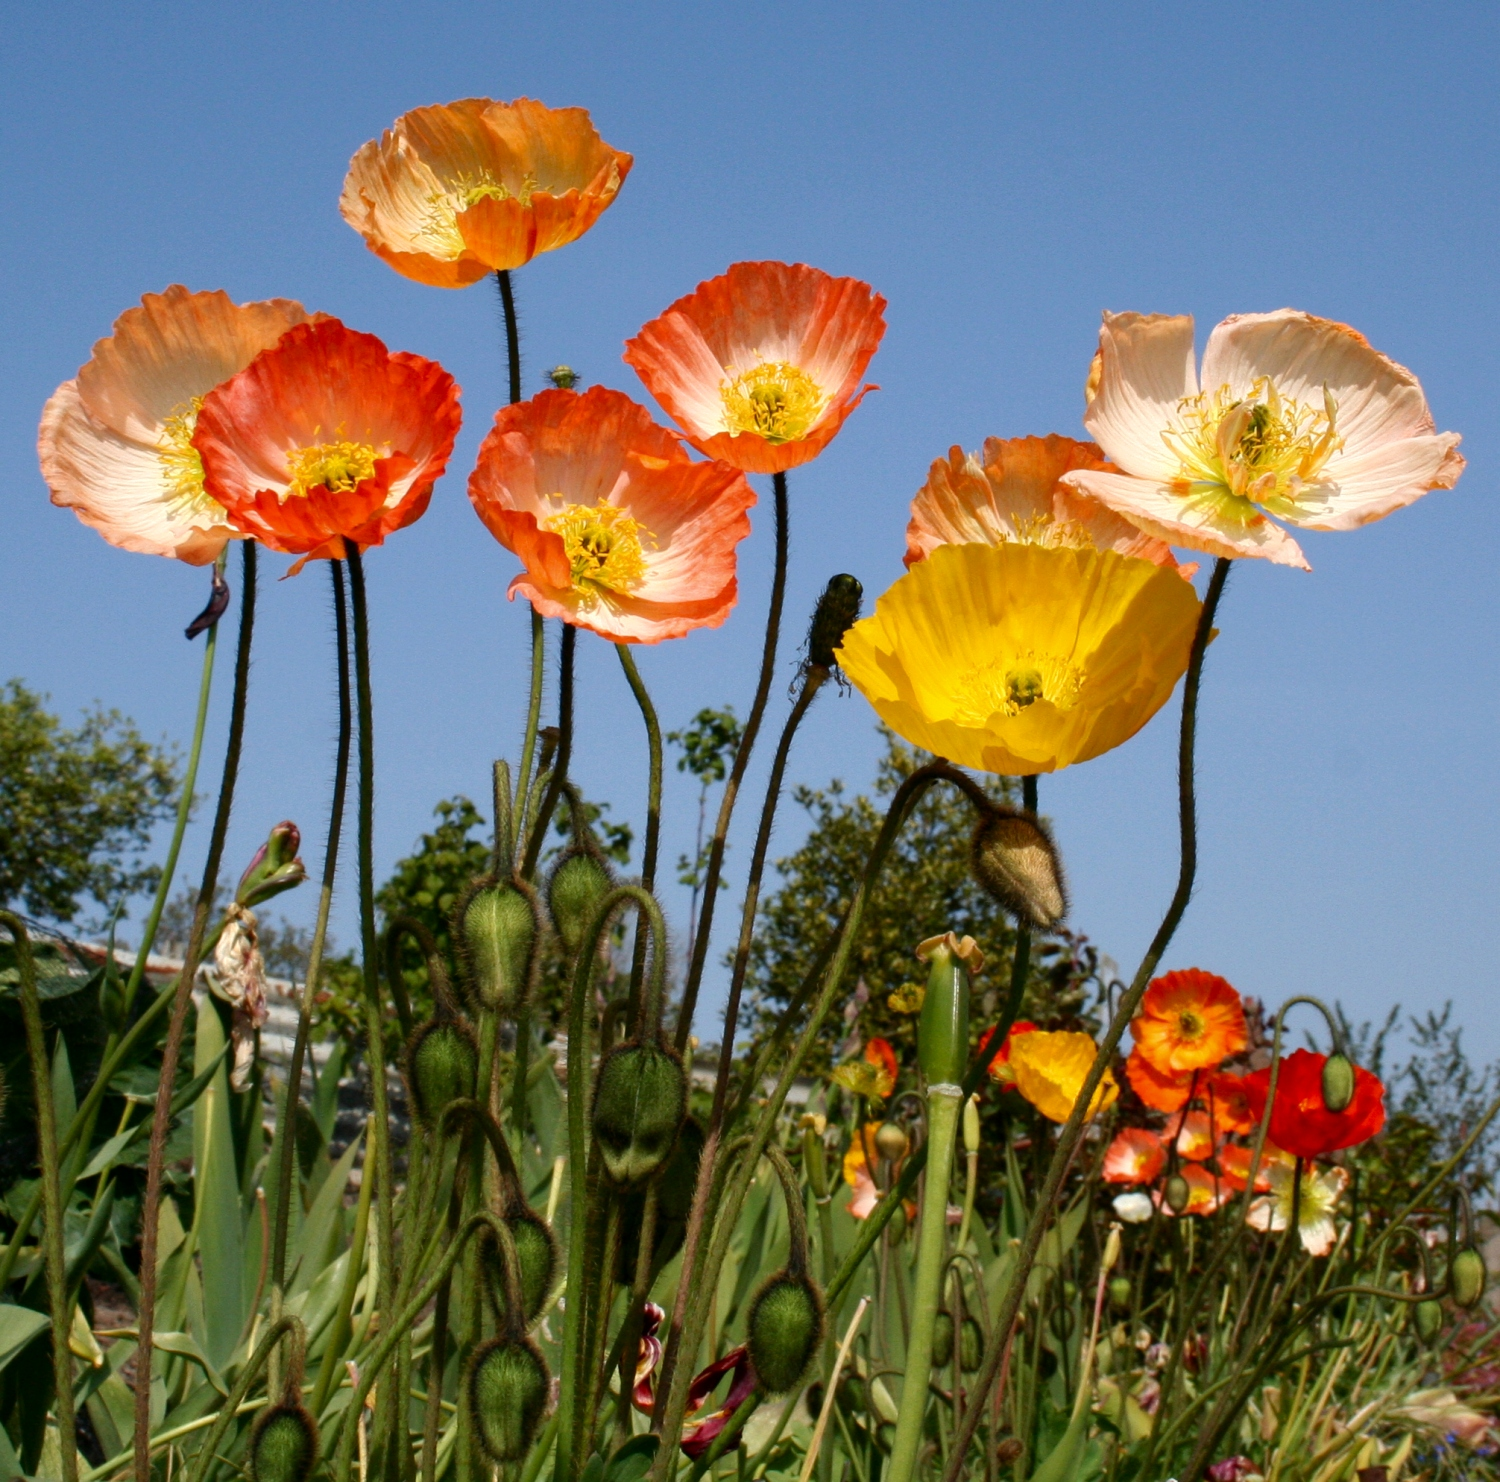 Scottish Artist and his Garden: PERFECT POPPIES